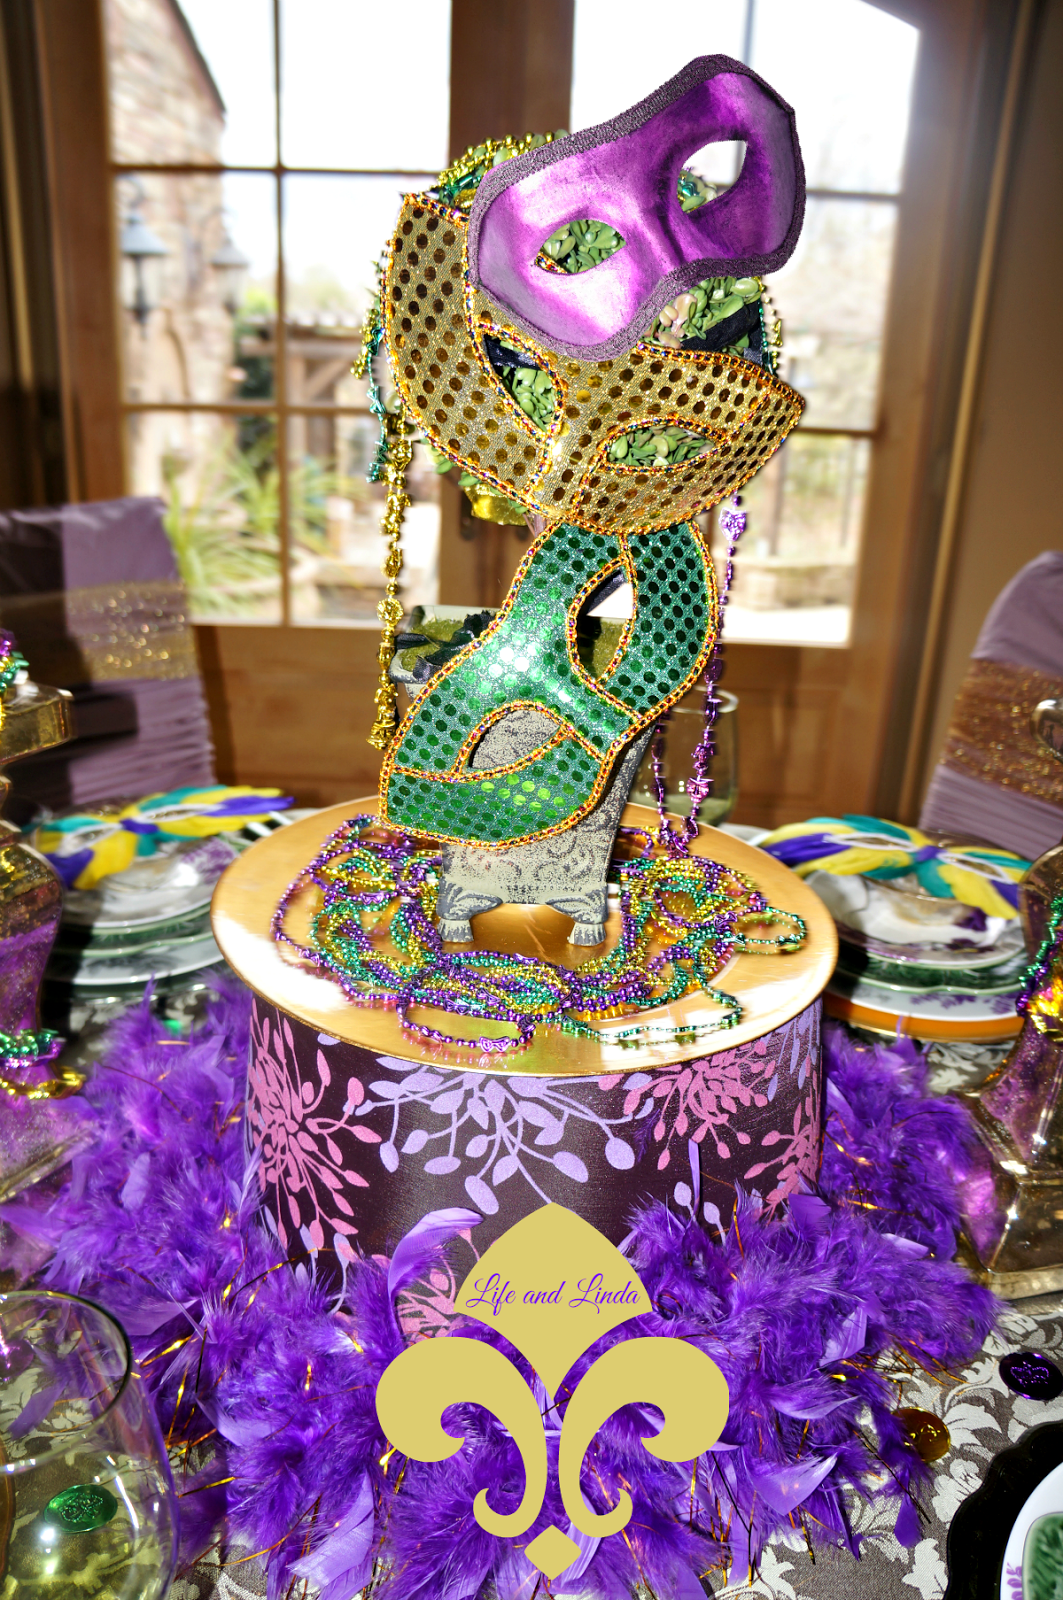 A Mardi Gras themed party featured on Jillian's blog, Catch My Party, included a few cute messages in the center of the table, wishing party guests a happy Mardi Gras. The cutouts were surrounded by an overflow of traditional colored beads and masks, which is .